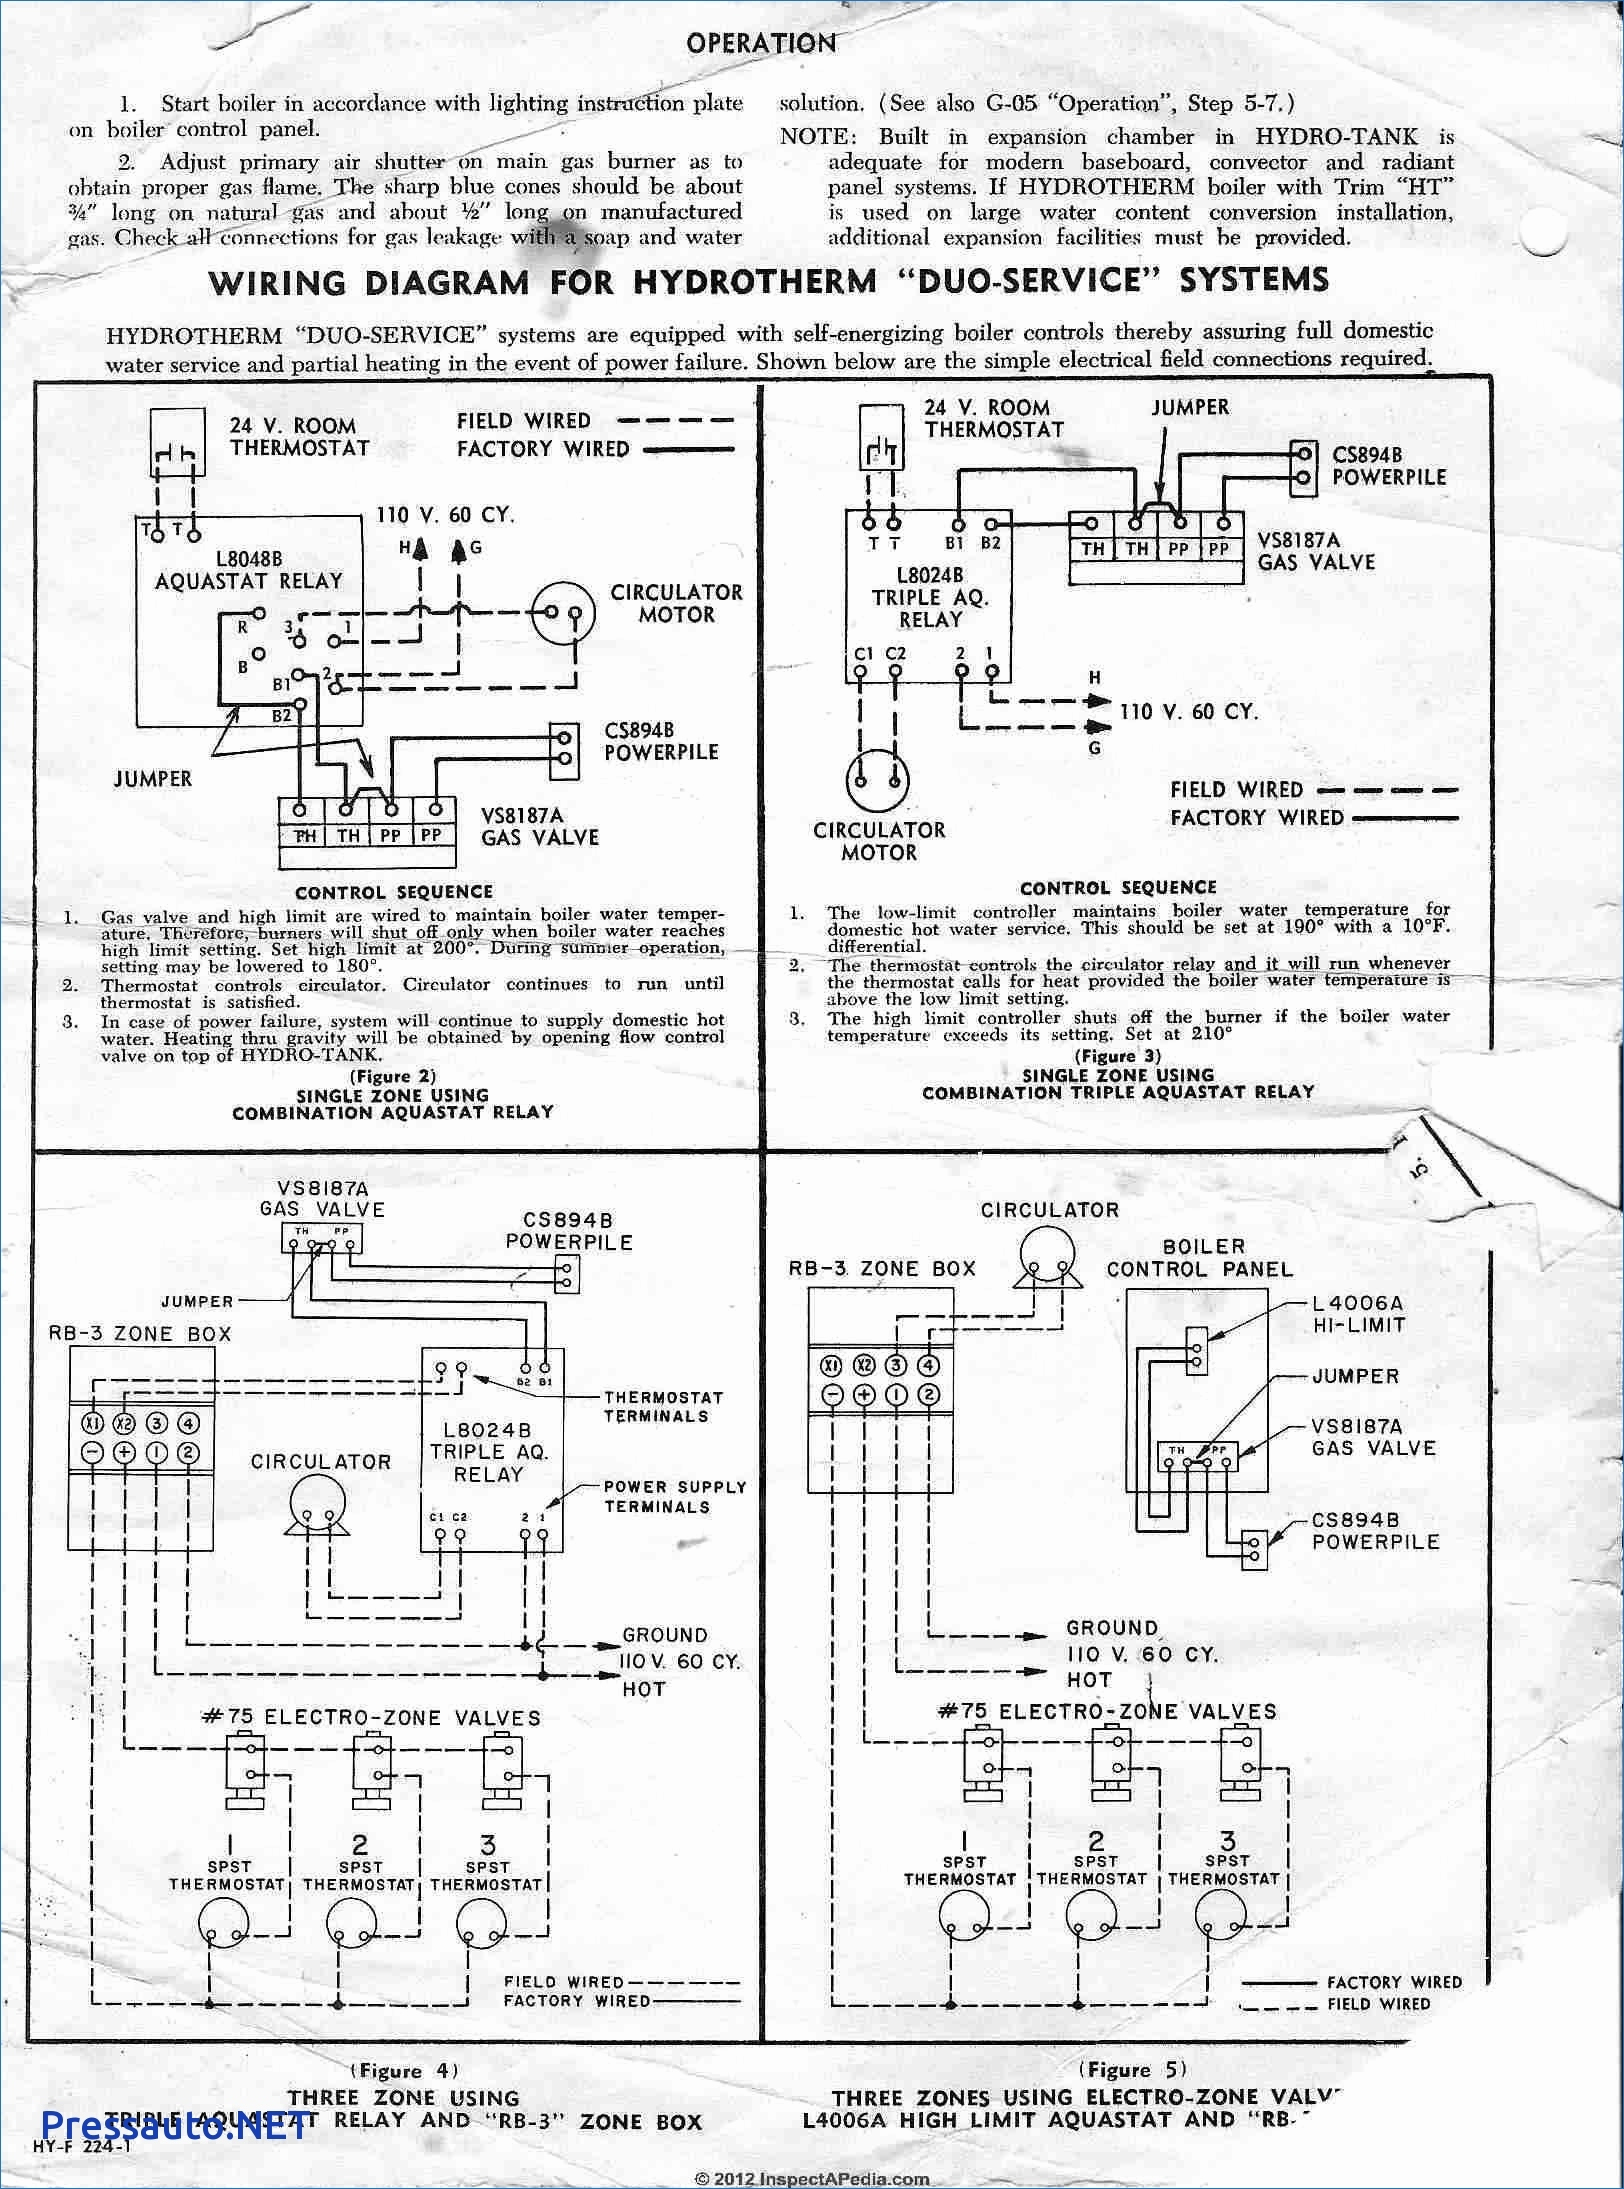 White Rodgers Gas Valve Wiring Diagram Collection | Wiring Diagram ...